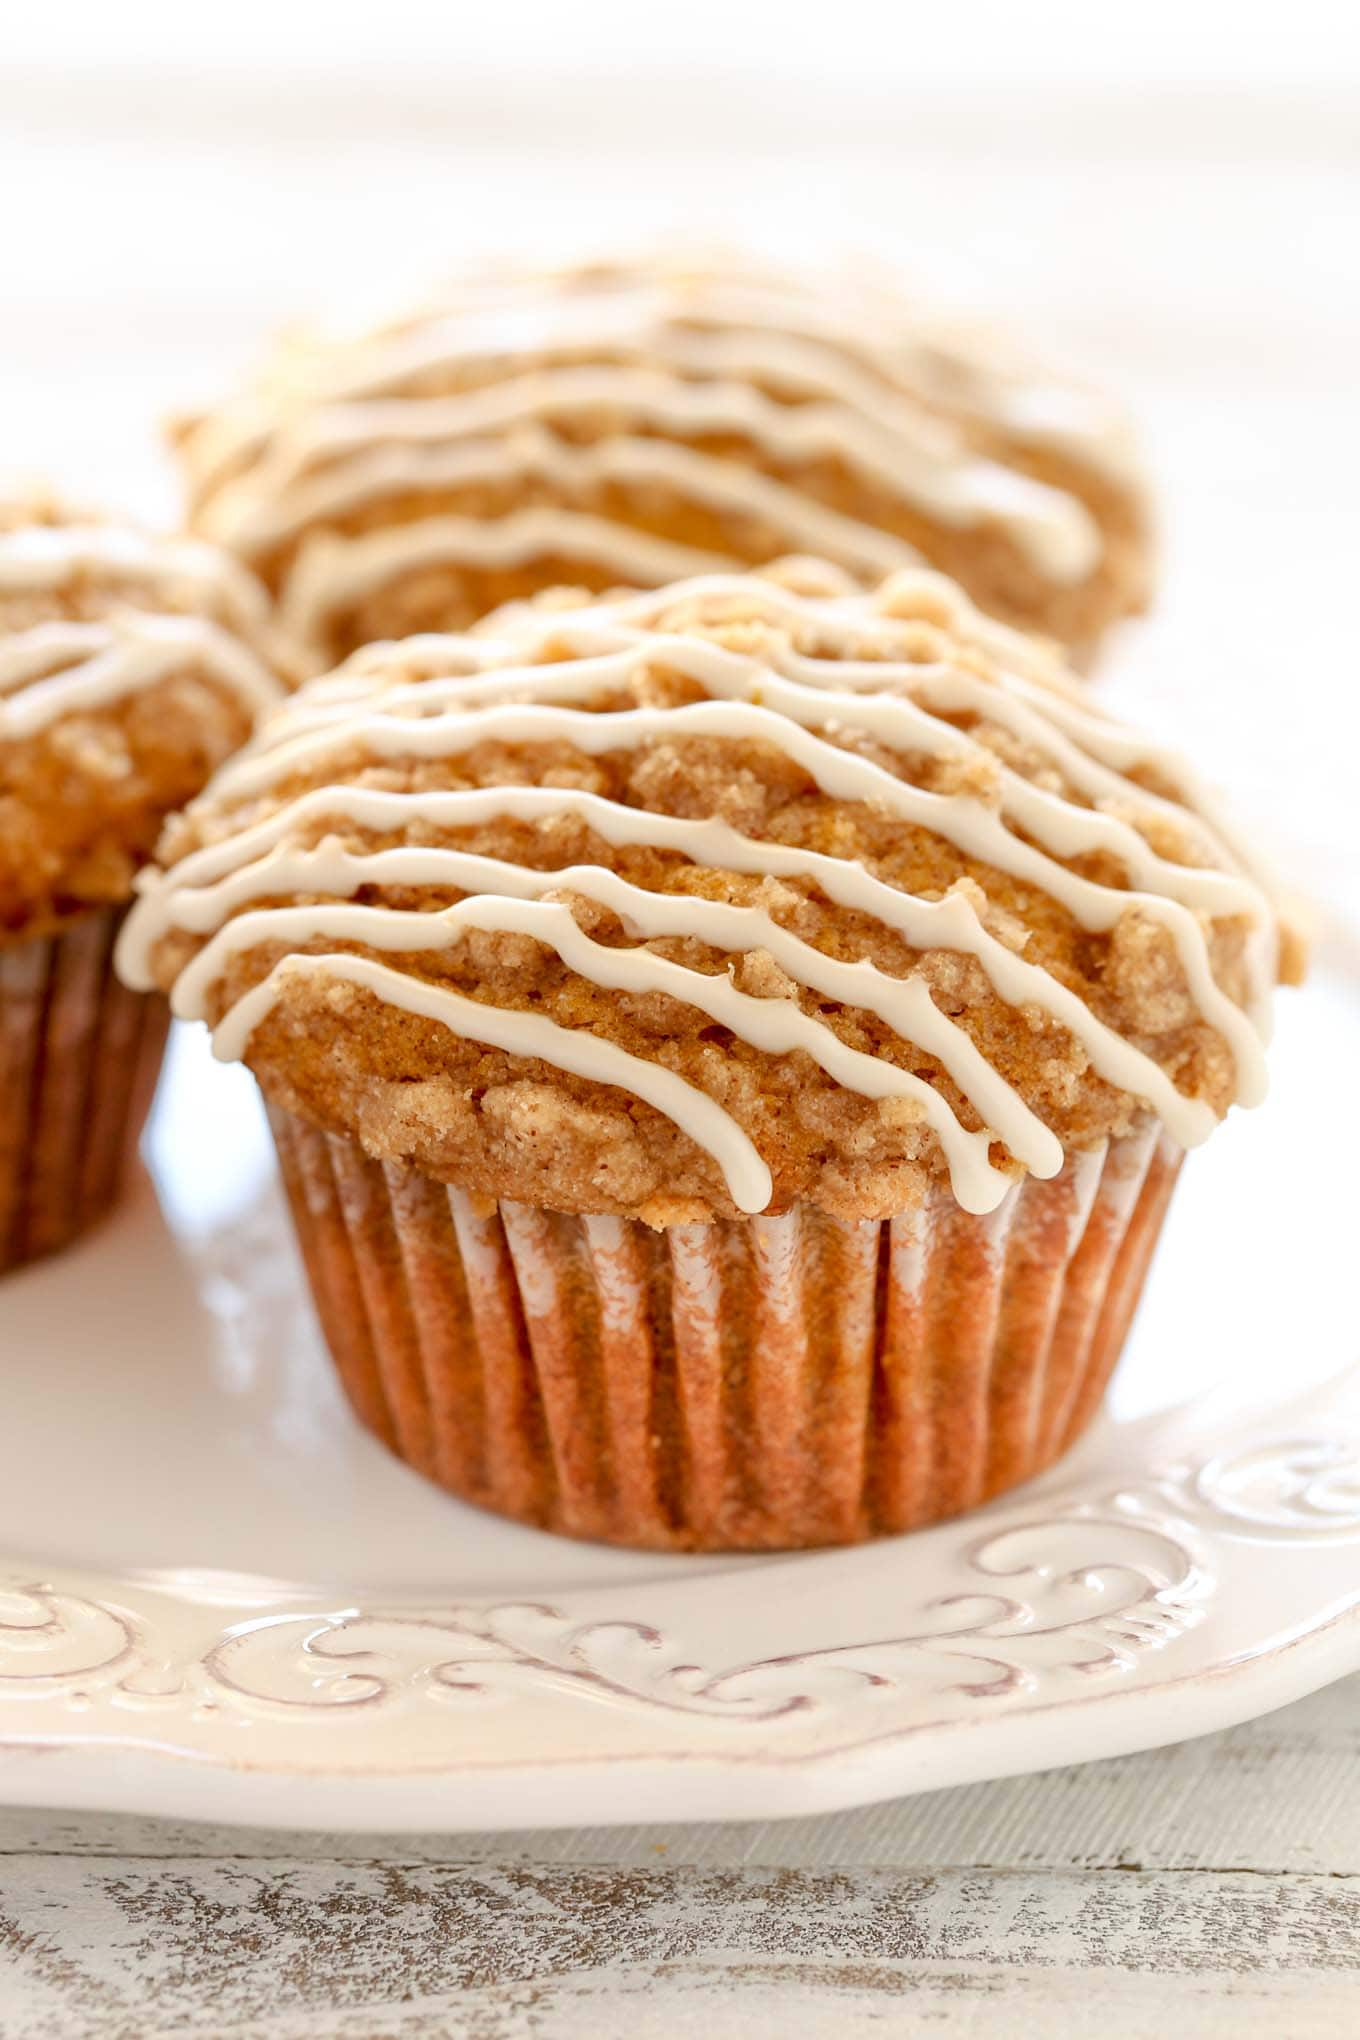 Three of the best ever pumpkin muffins topped with vanilla glaze on a white plate.